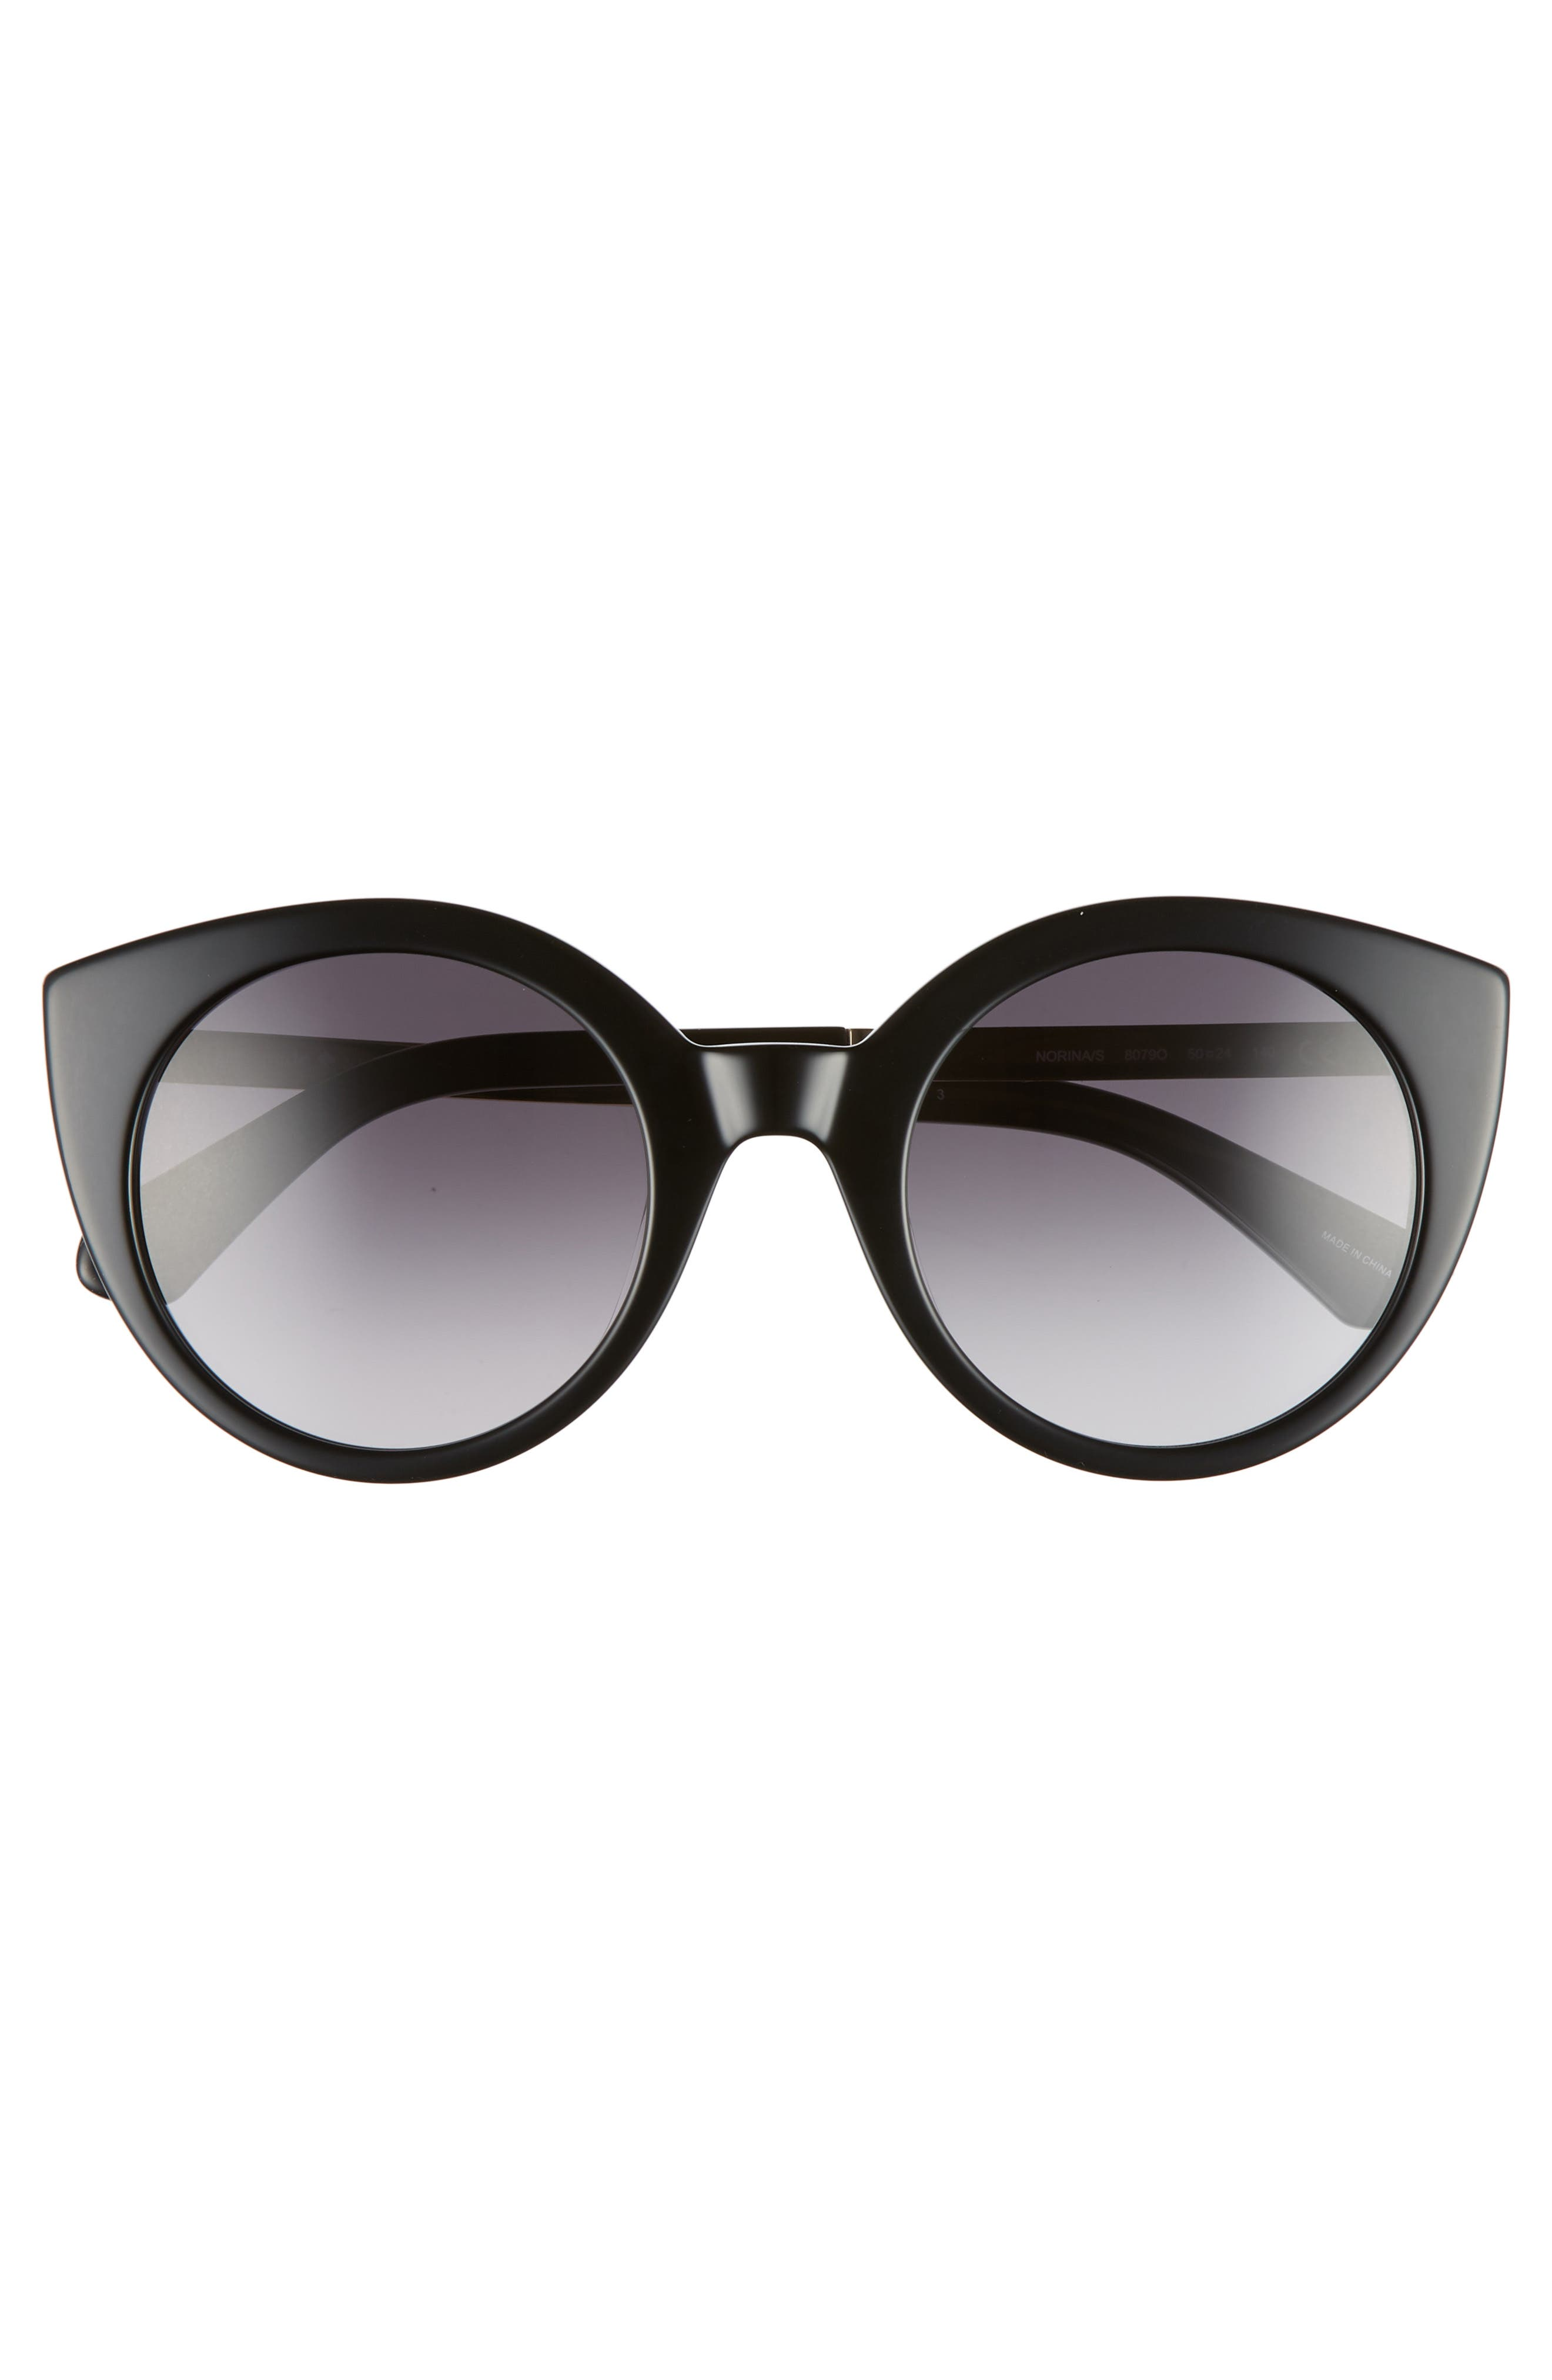 norinas 50mm cat eye sunglasses,                             Alternate thumbnail 3, color,                             001